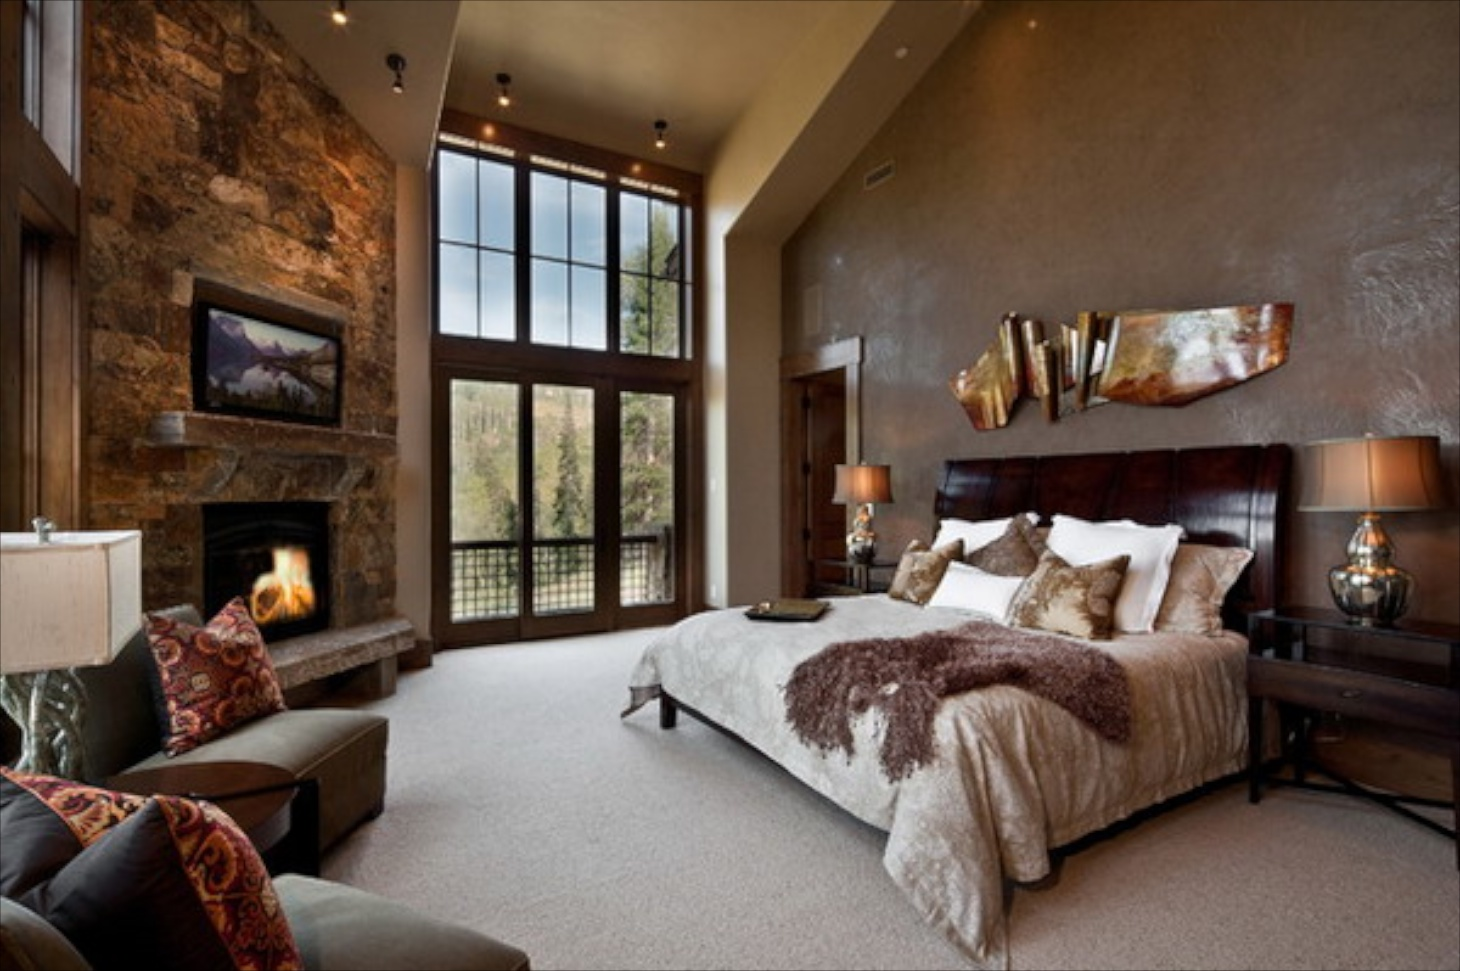 06_Rustic Bedroom Interior With Stone Wall Decoration_WHG